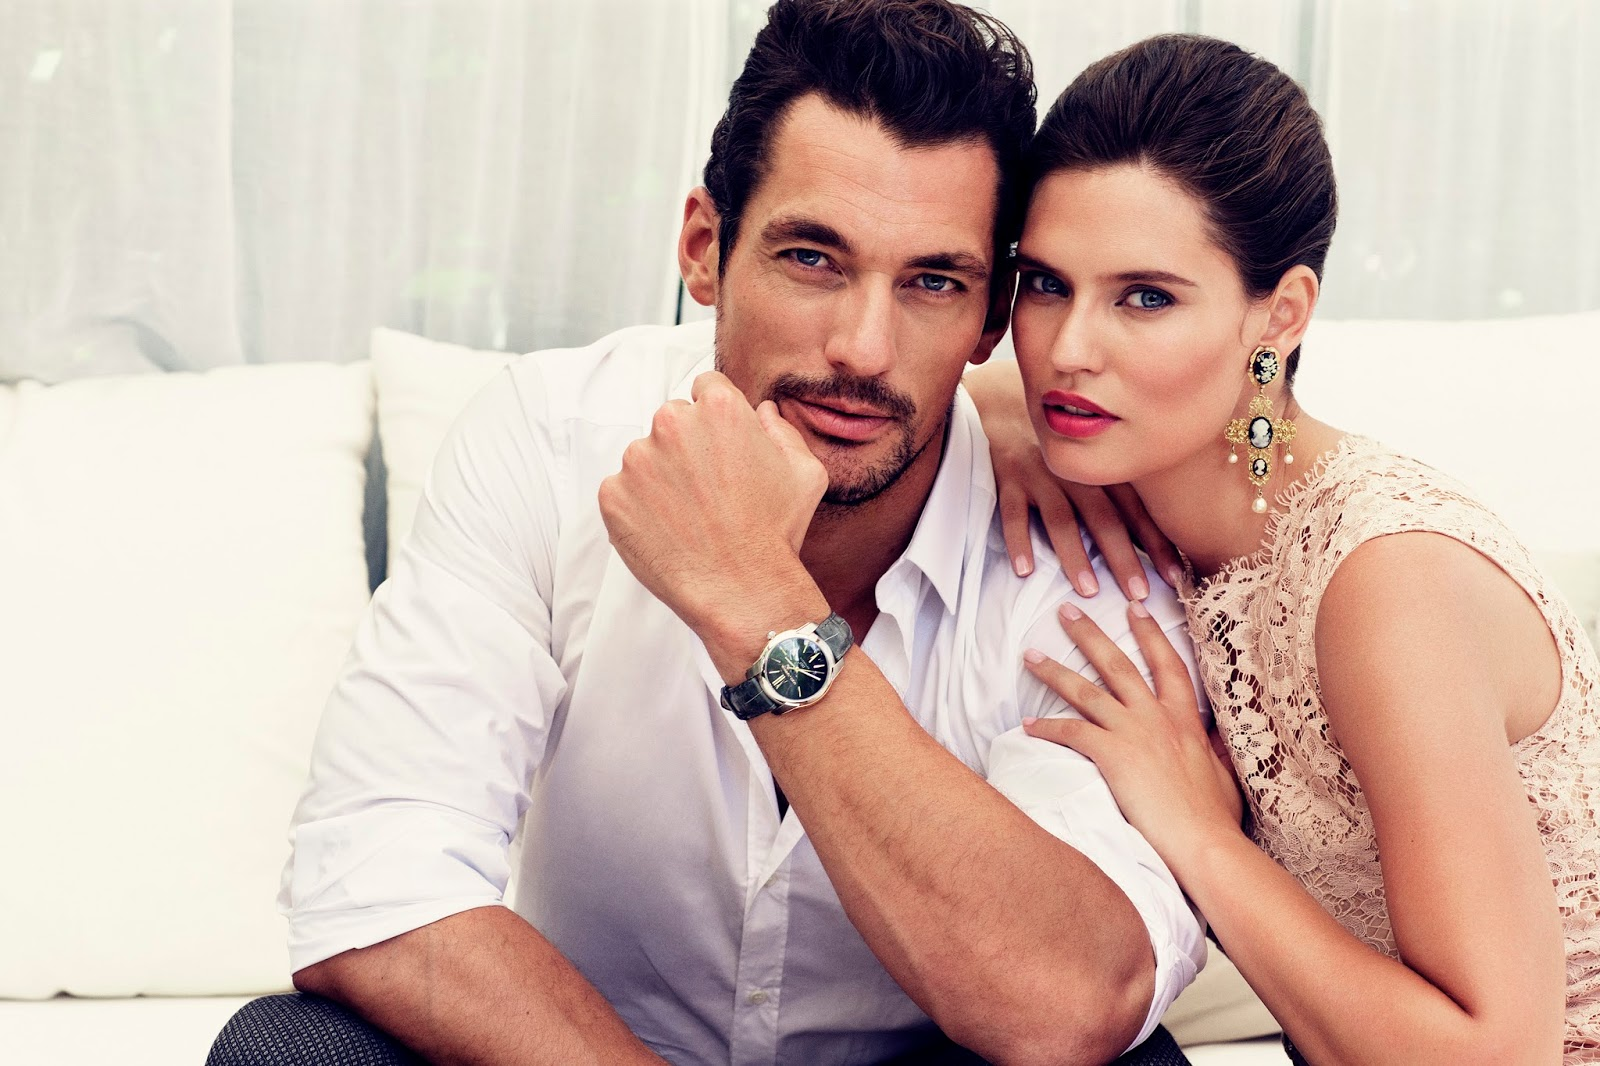 Dolce-Gabbanna-Models-Bianca-Balti-and-David-Gandy